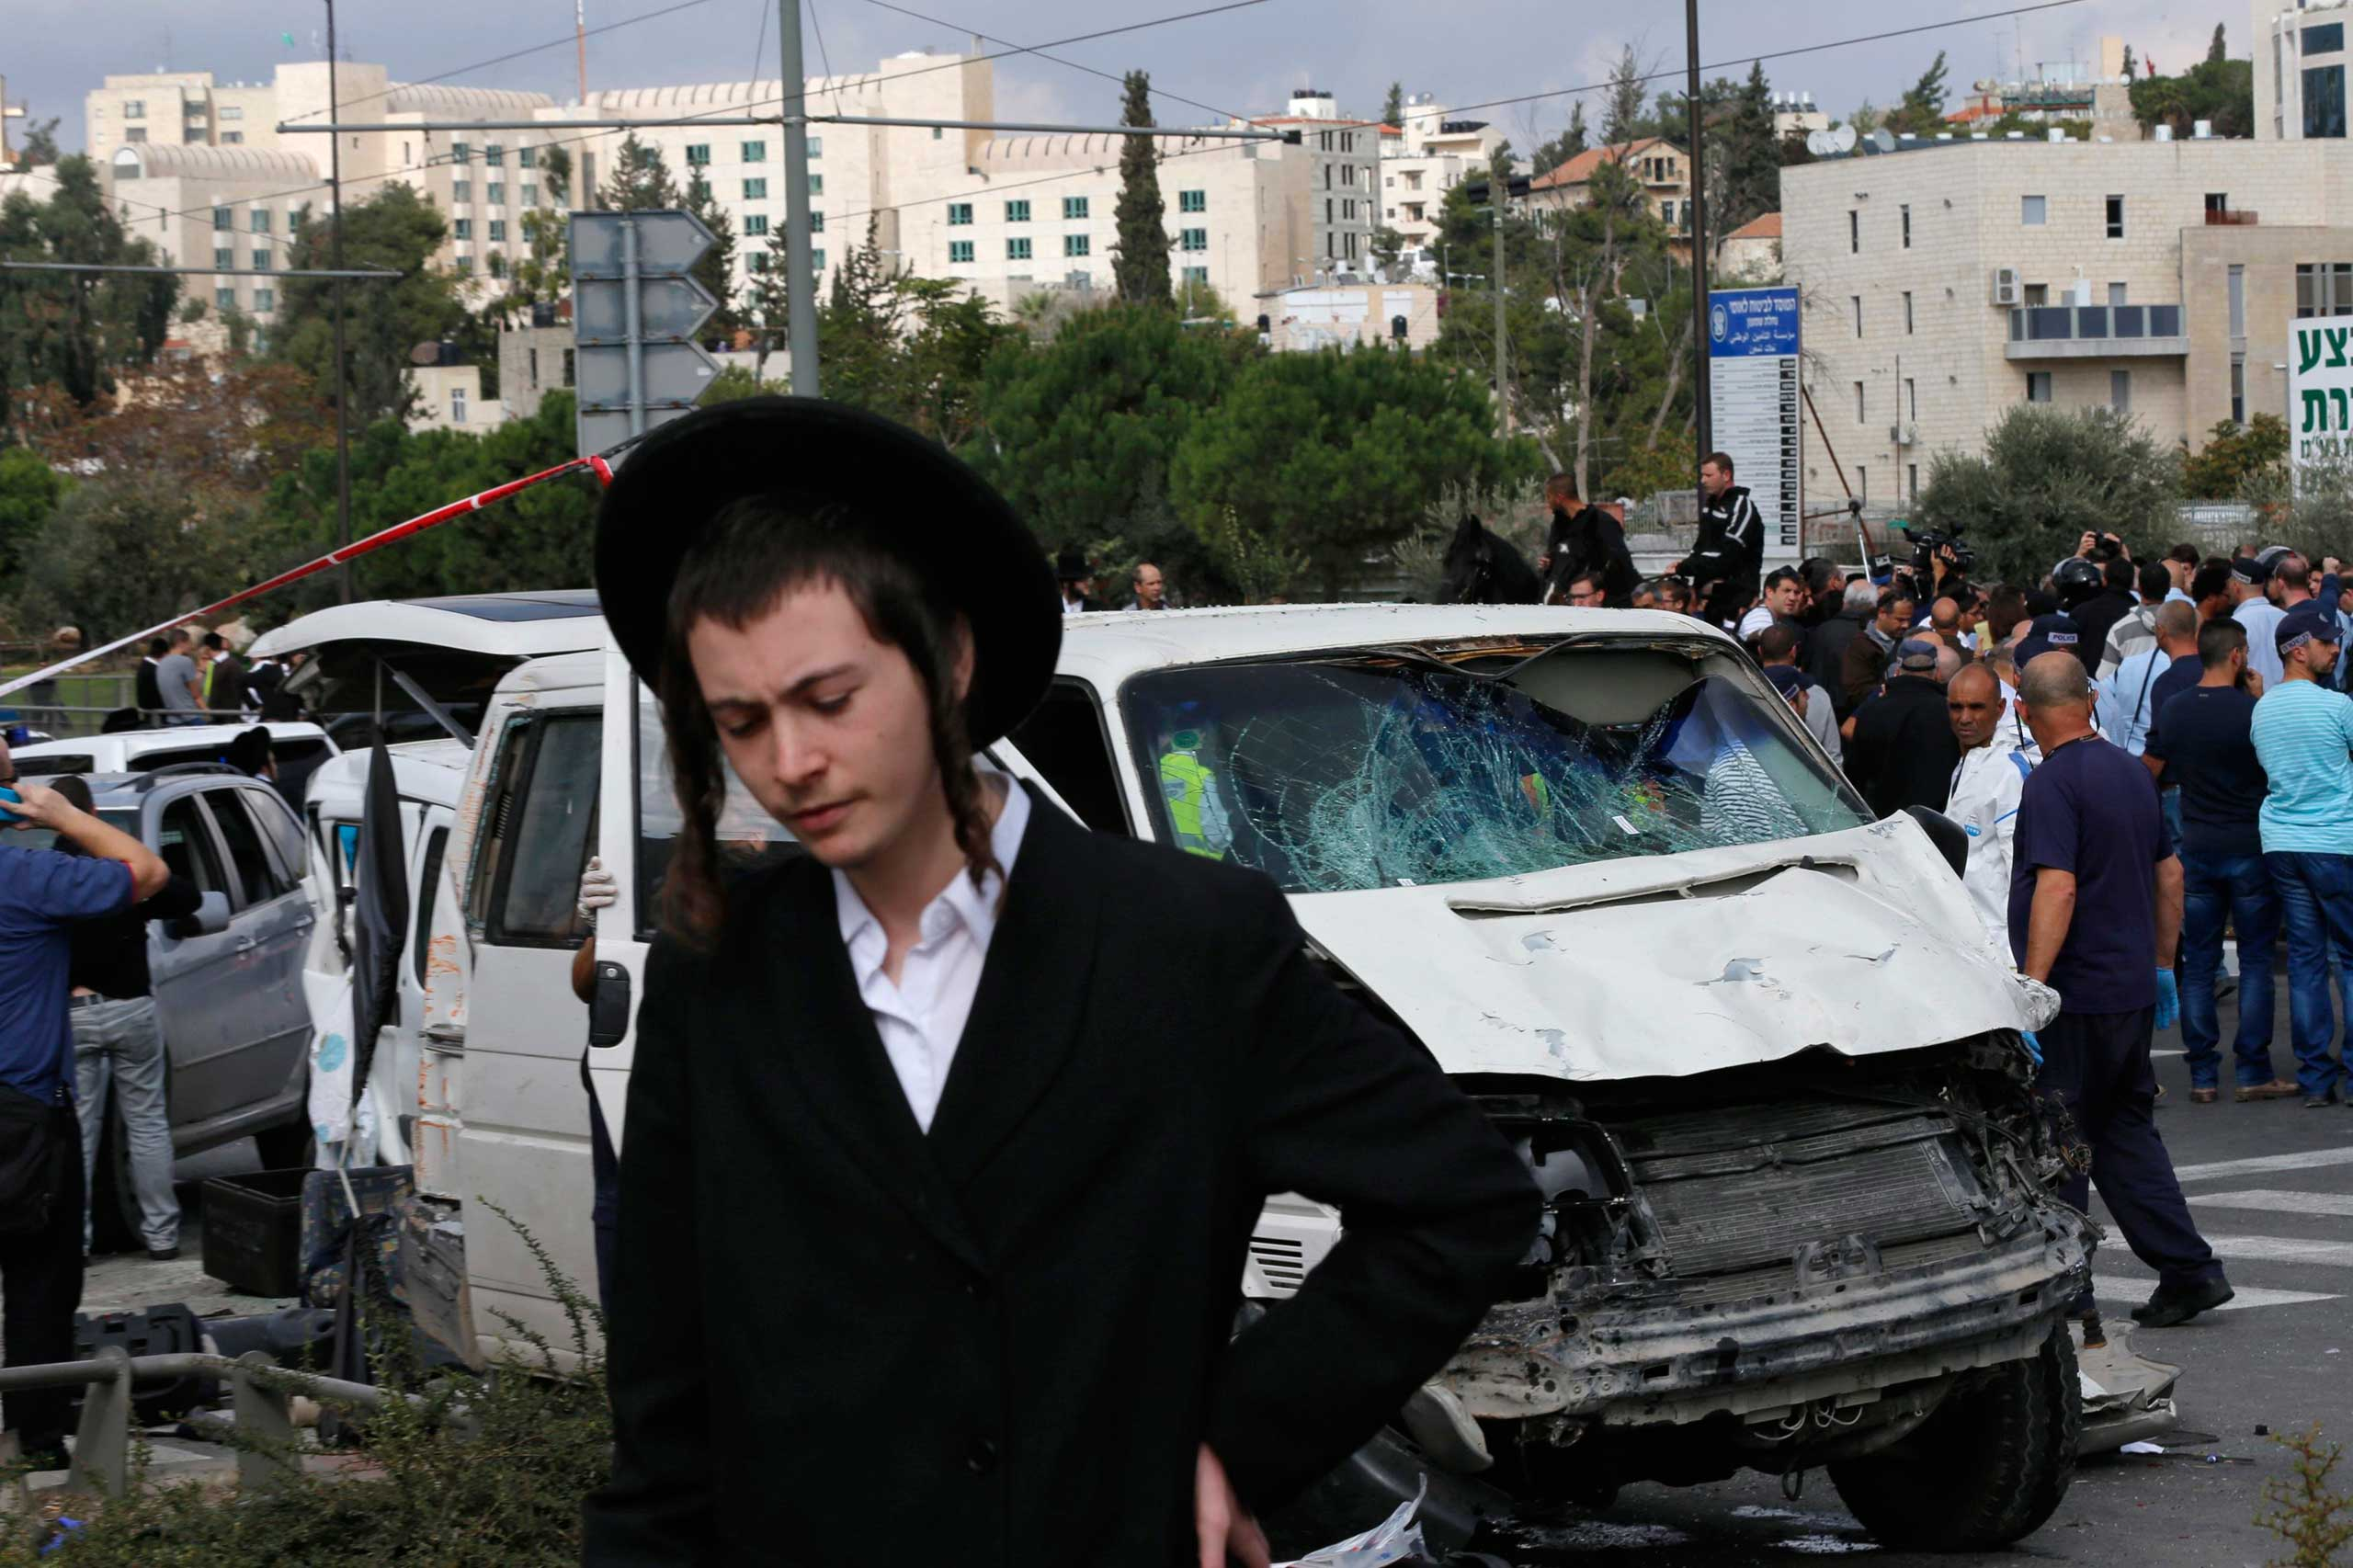 An ultra-Orthodox youth stands in front of the vehicle of a Palestinian motorist who rammed into pedestrians at the scene of an attack in Jerusalem, Nov. 5, 2014.